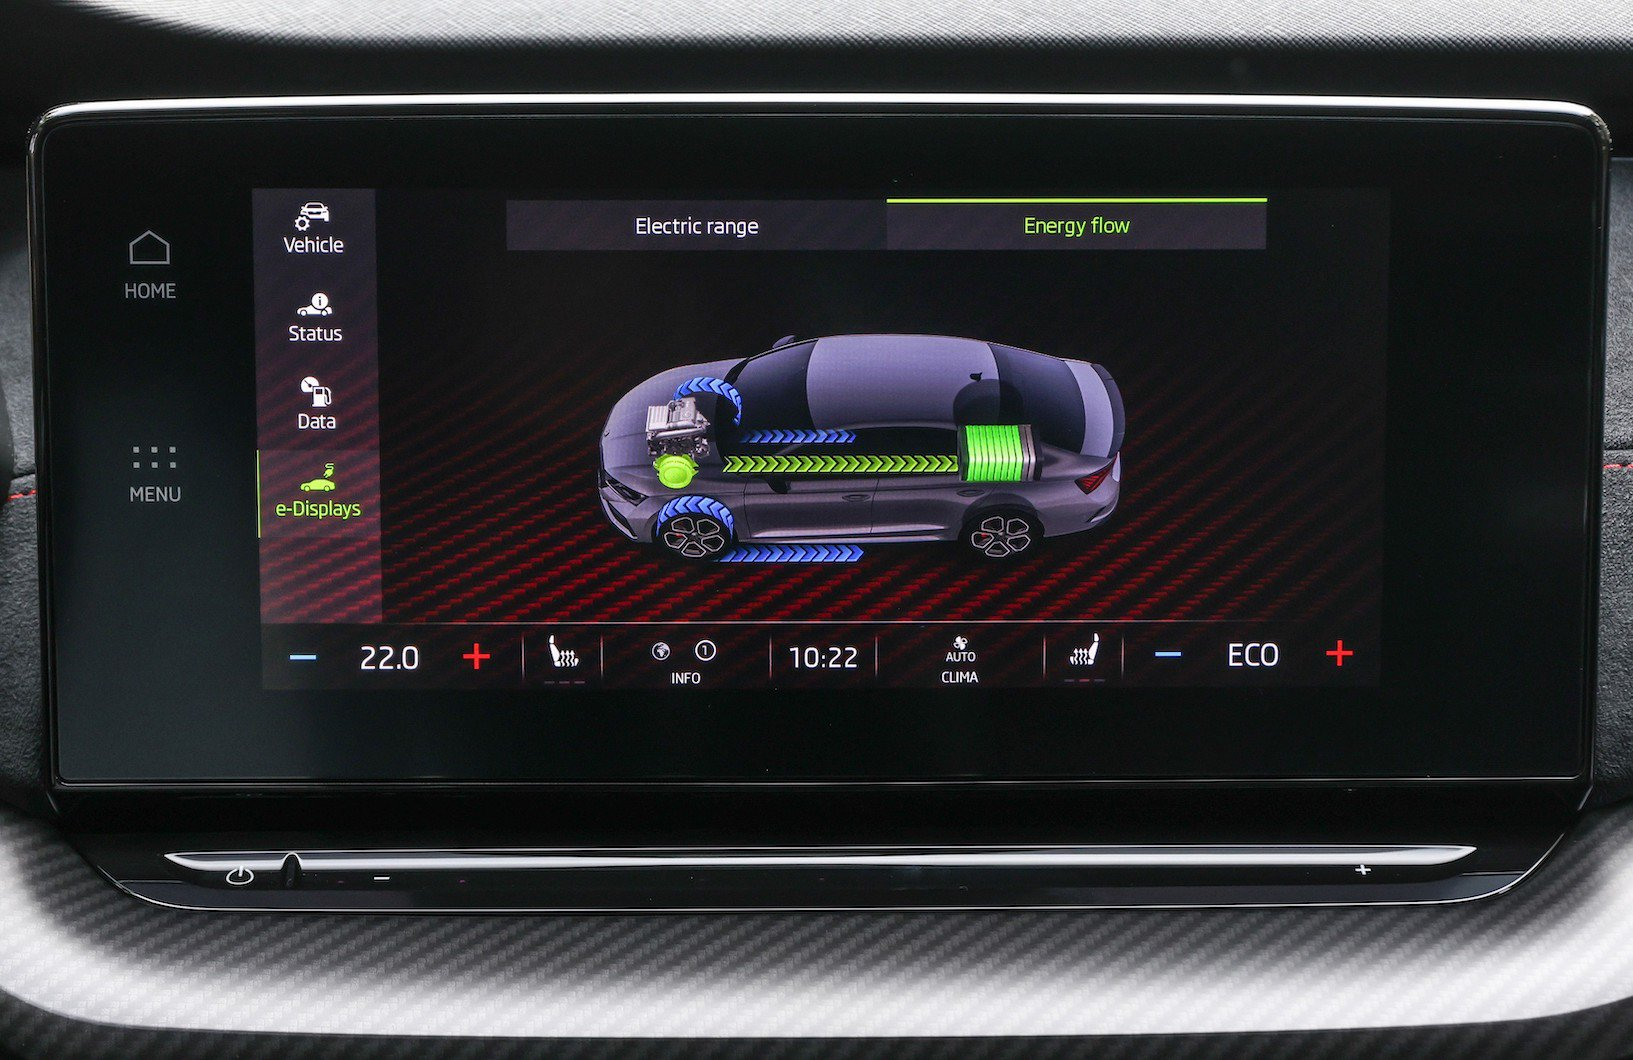 The Skoda Superb iV covers 37 miles in electric-only E-mode, while the Skoda Octavia iV does 43 miles